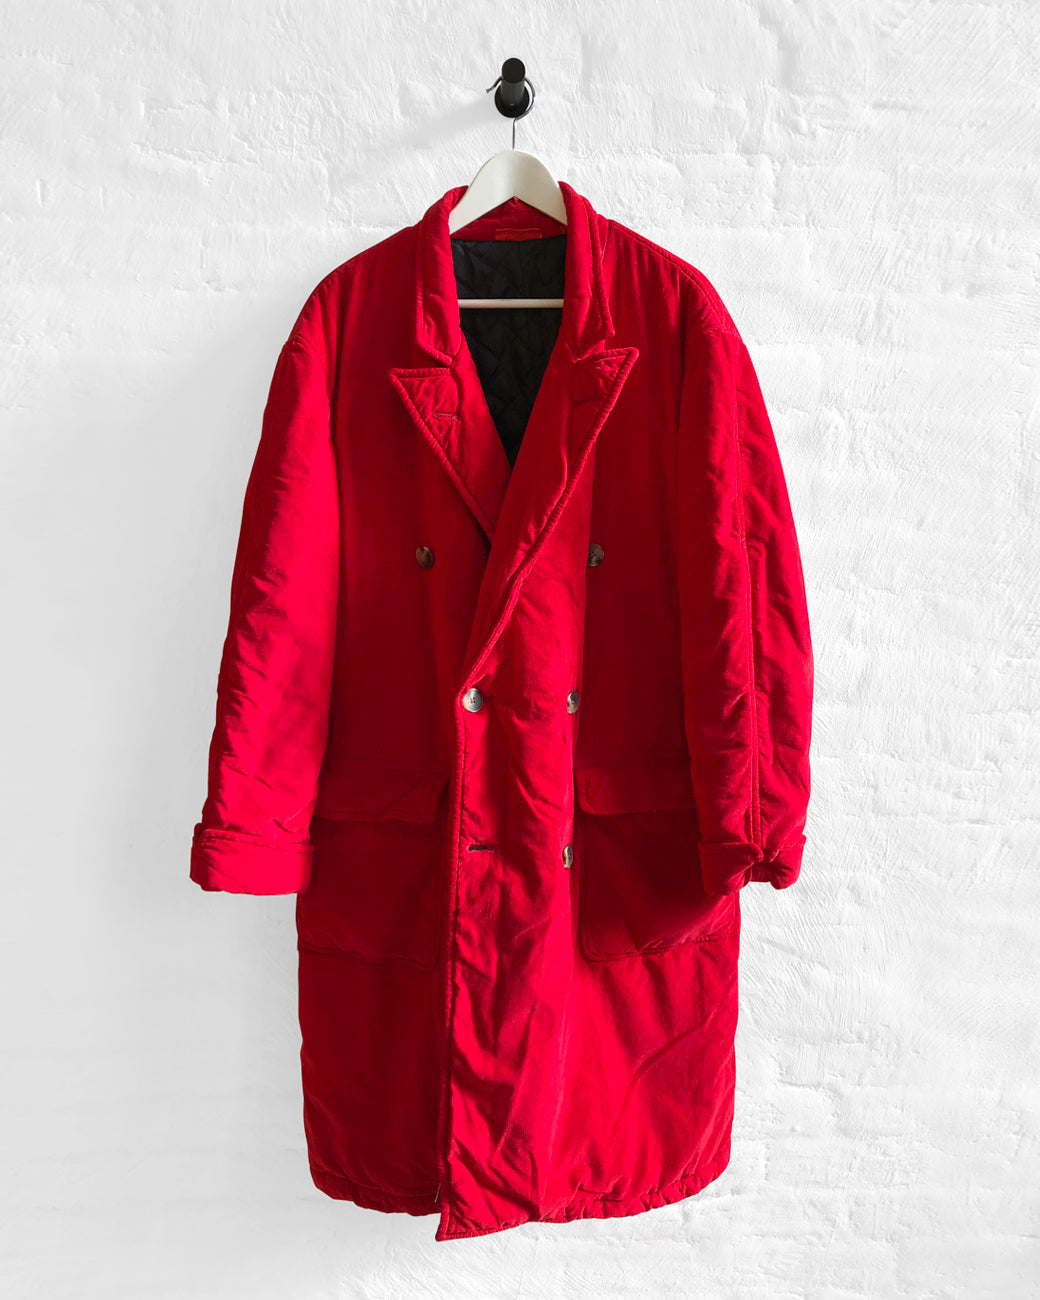 Peak Lapel Coat - Red